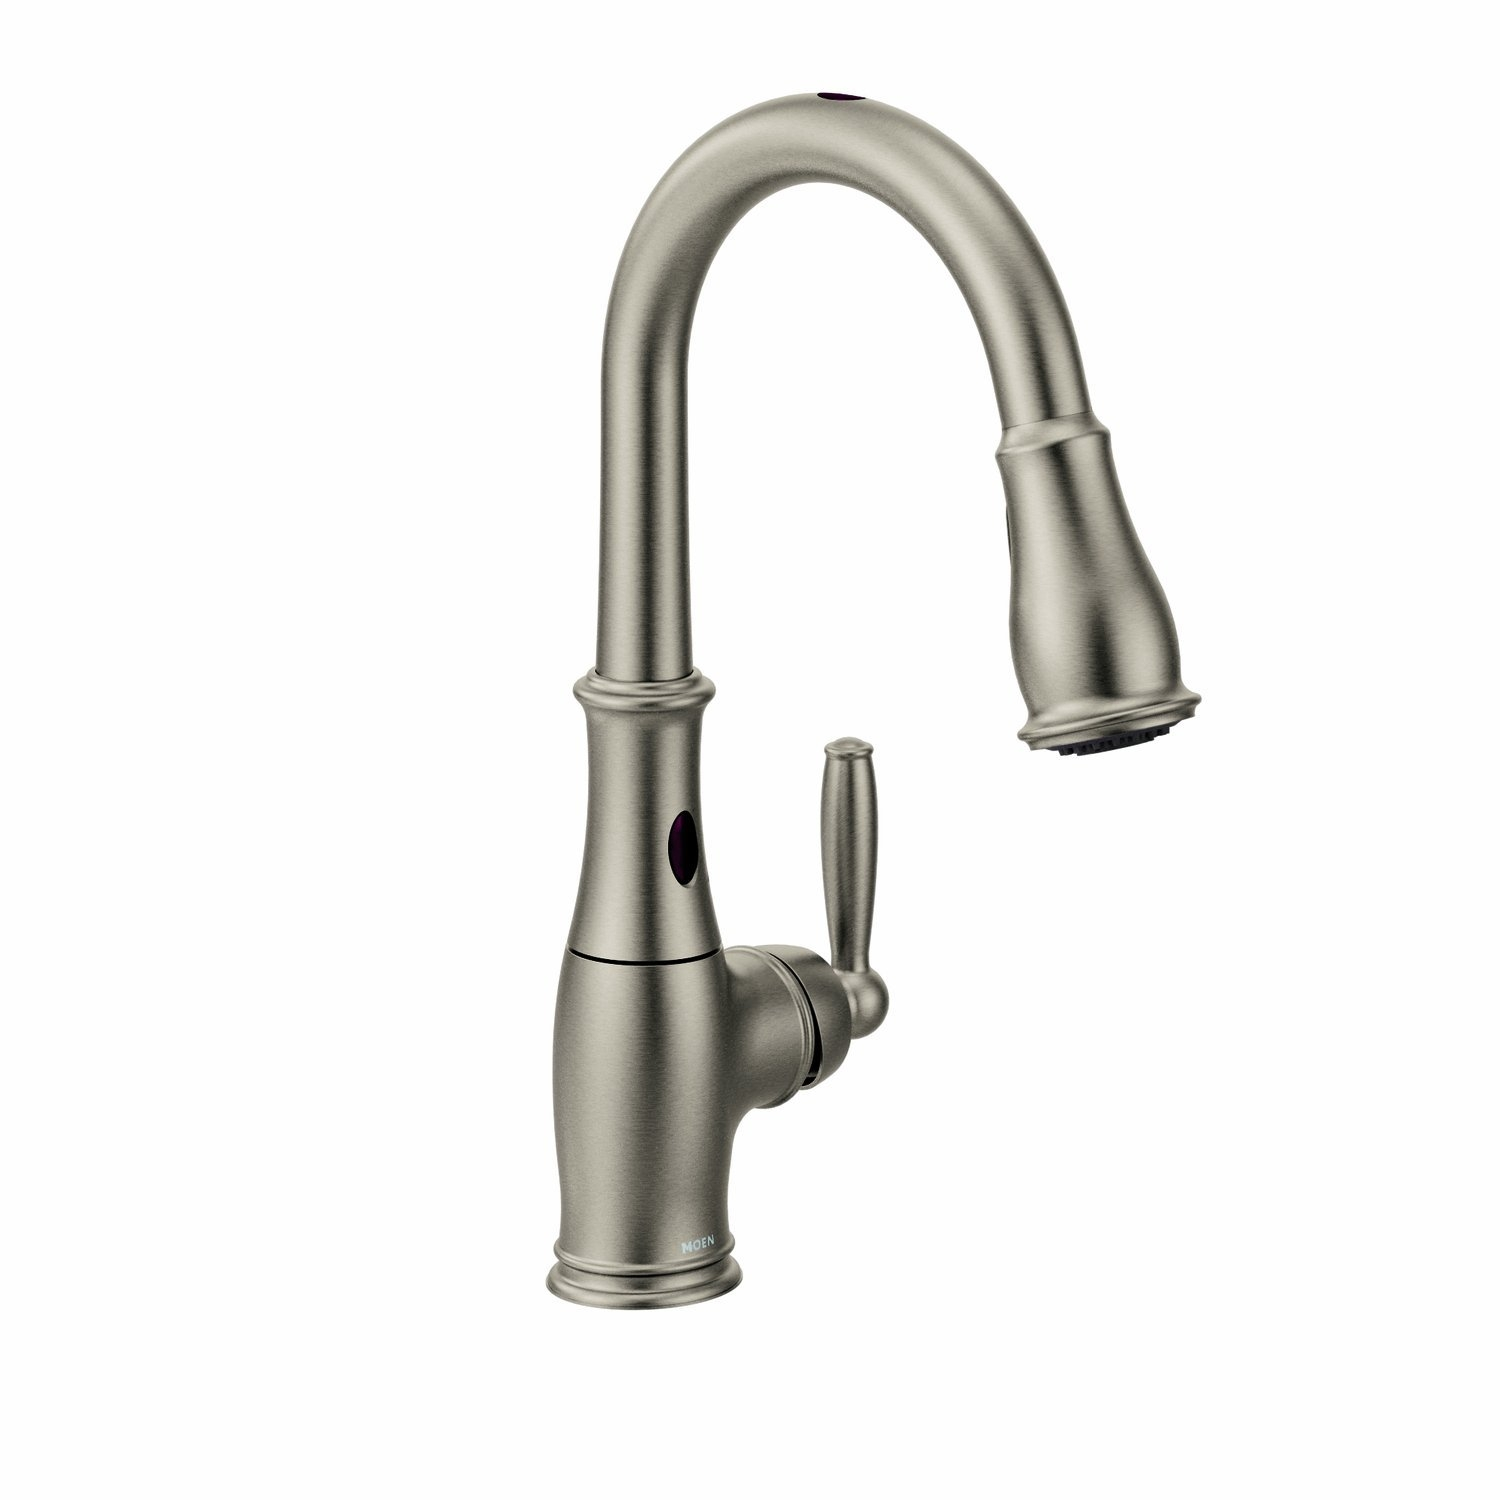 Ideas, interior delta addison touch faucet delta faucet addison for sizing 1500 x 1500  .